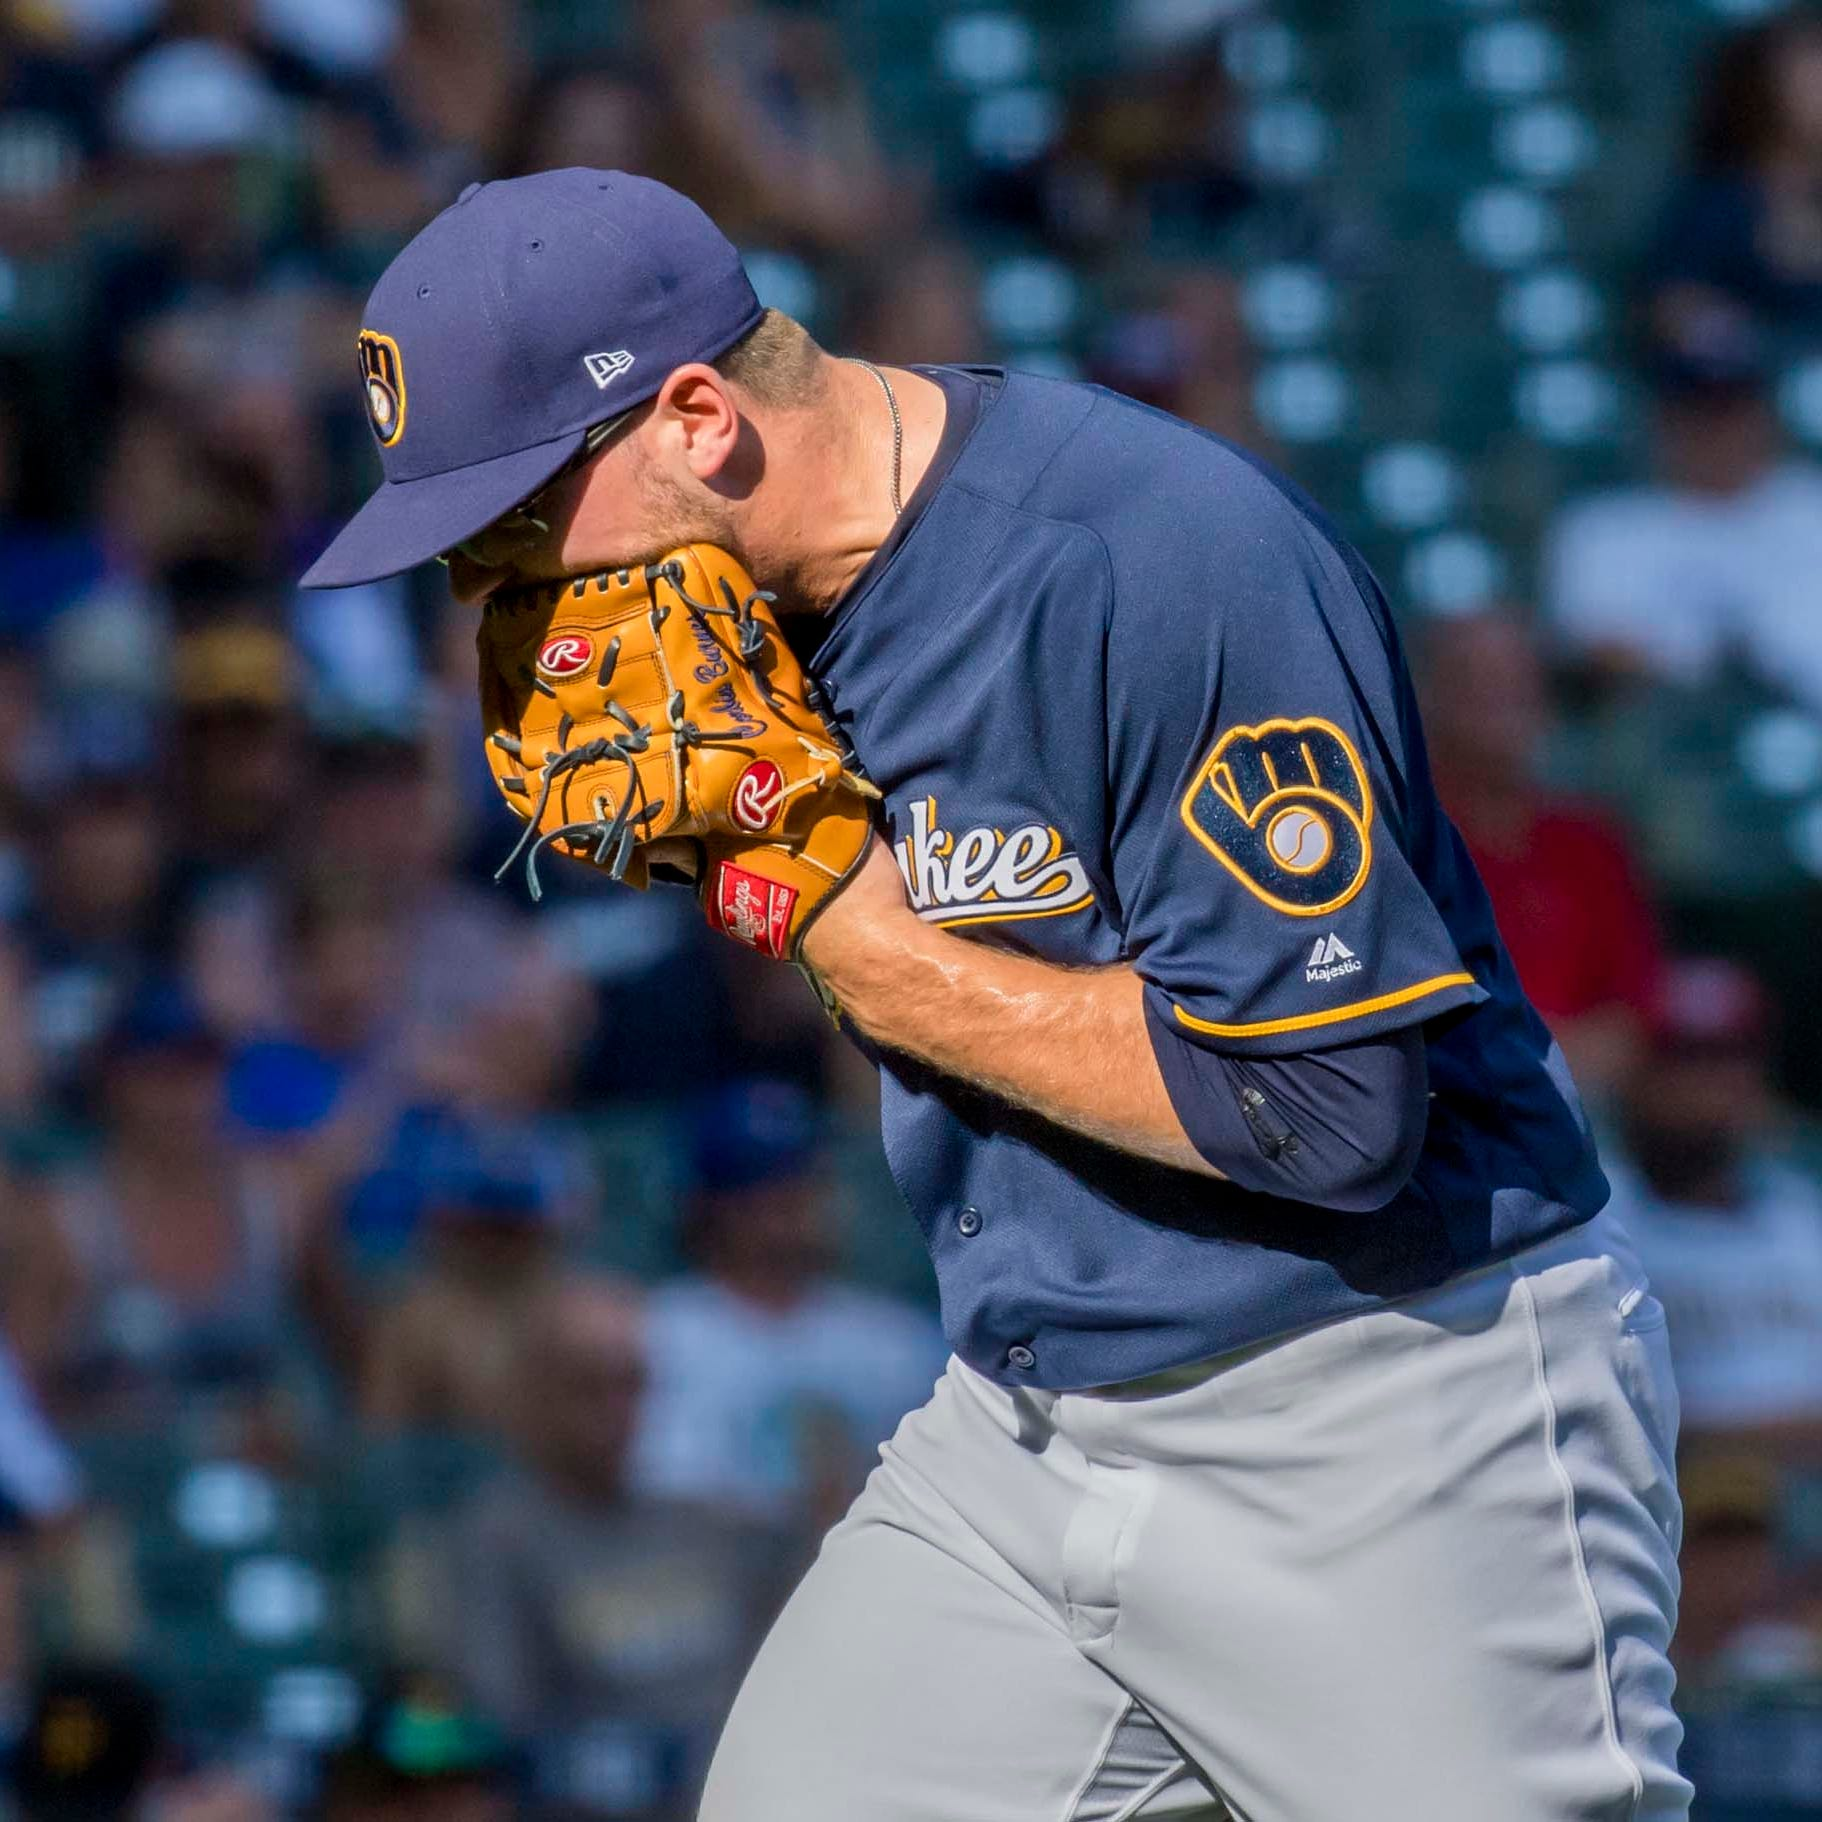 Pirates 3, Brewers 2: Offense comes up short yet again